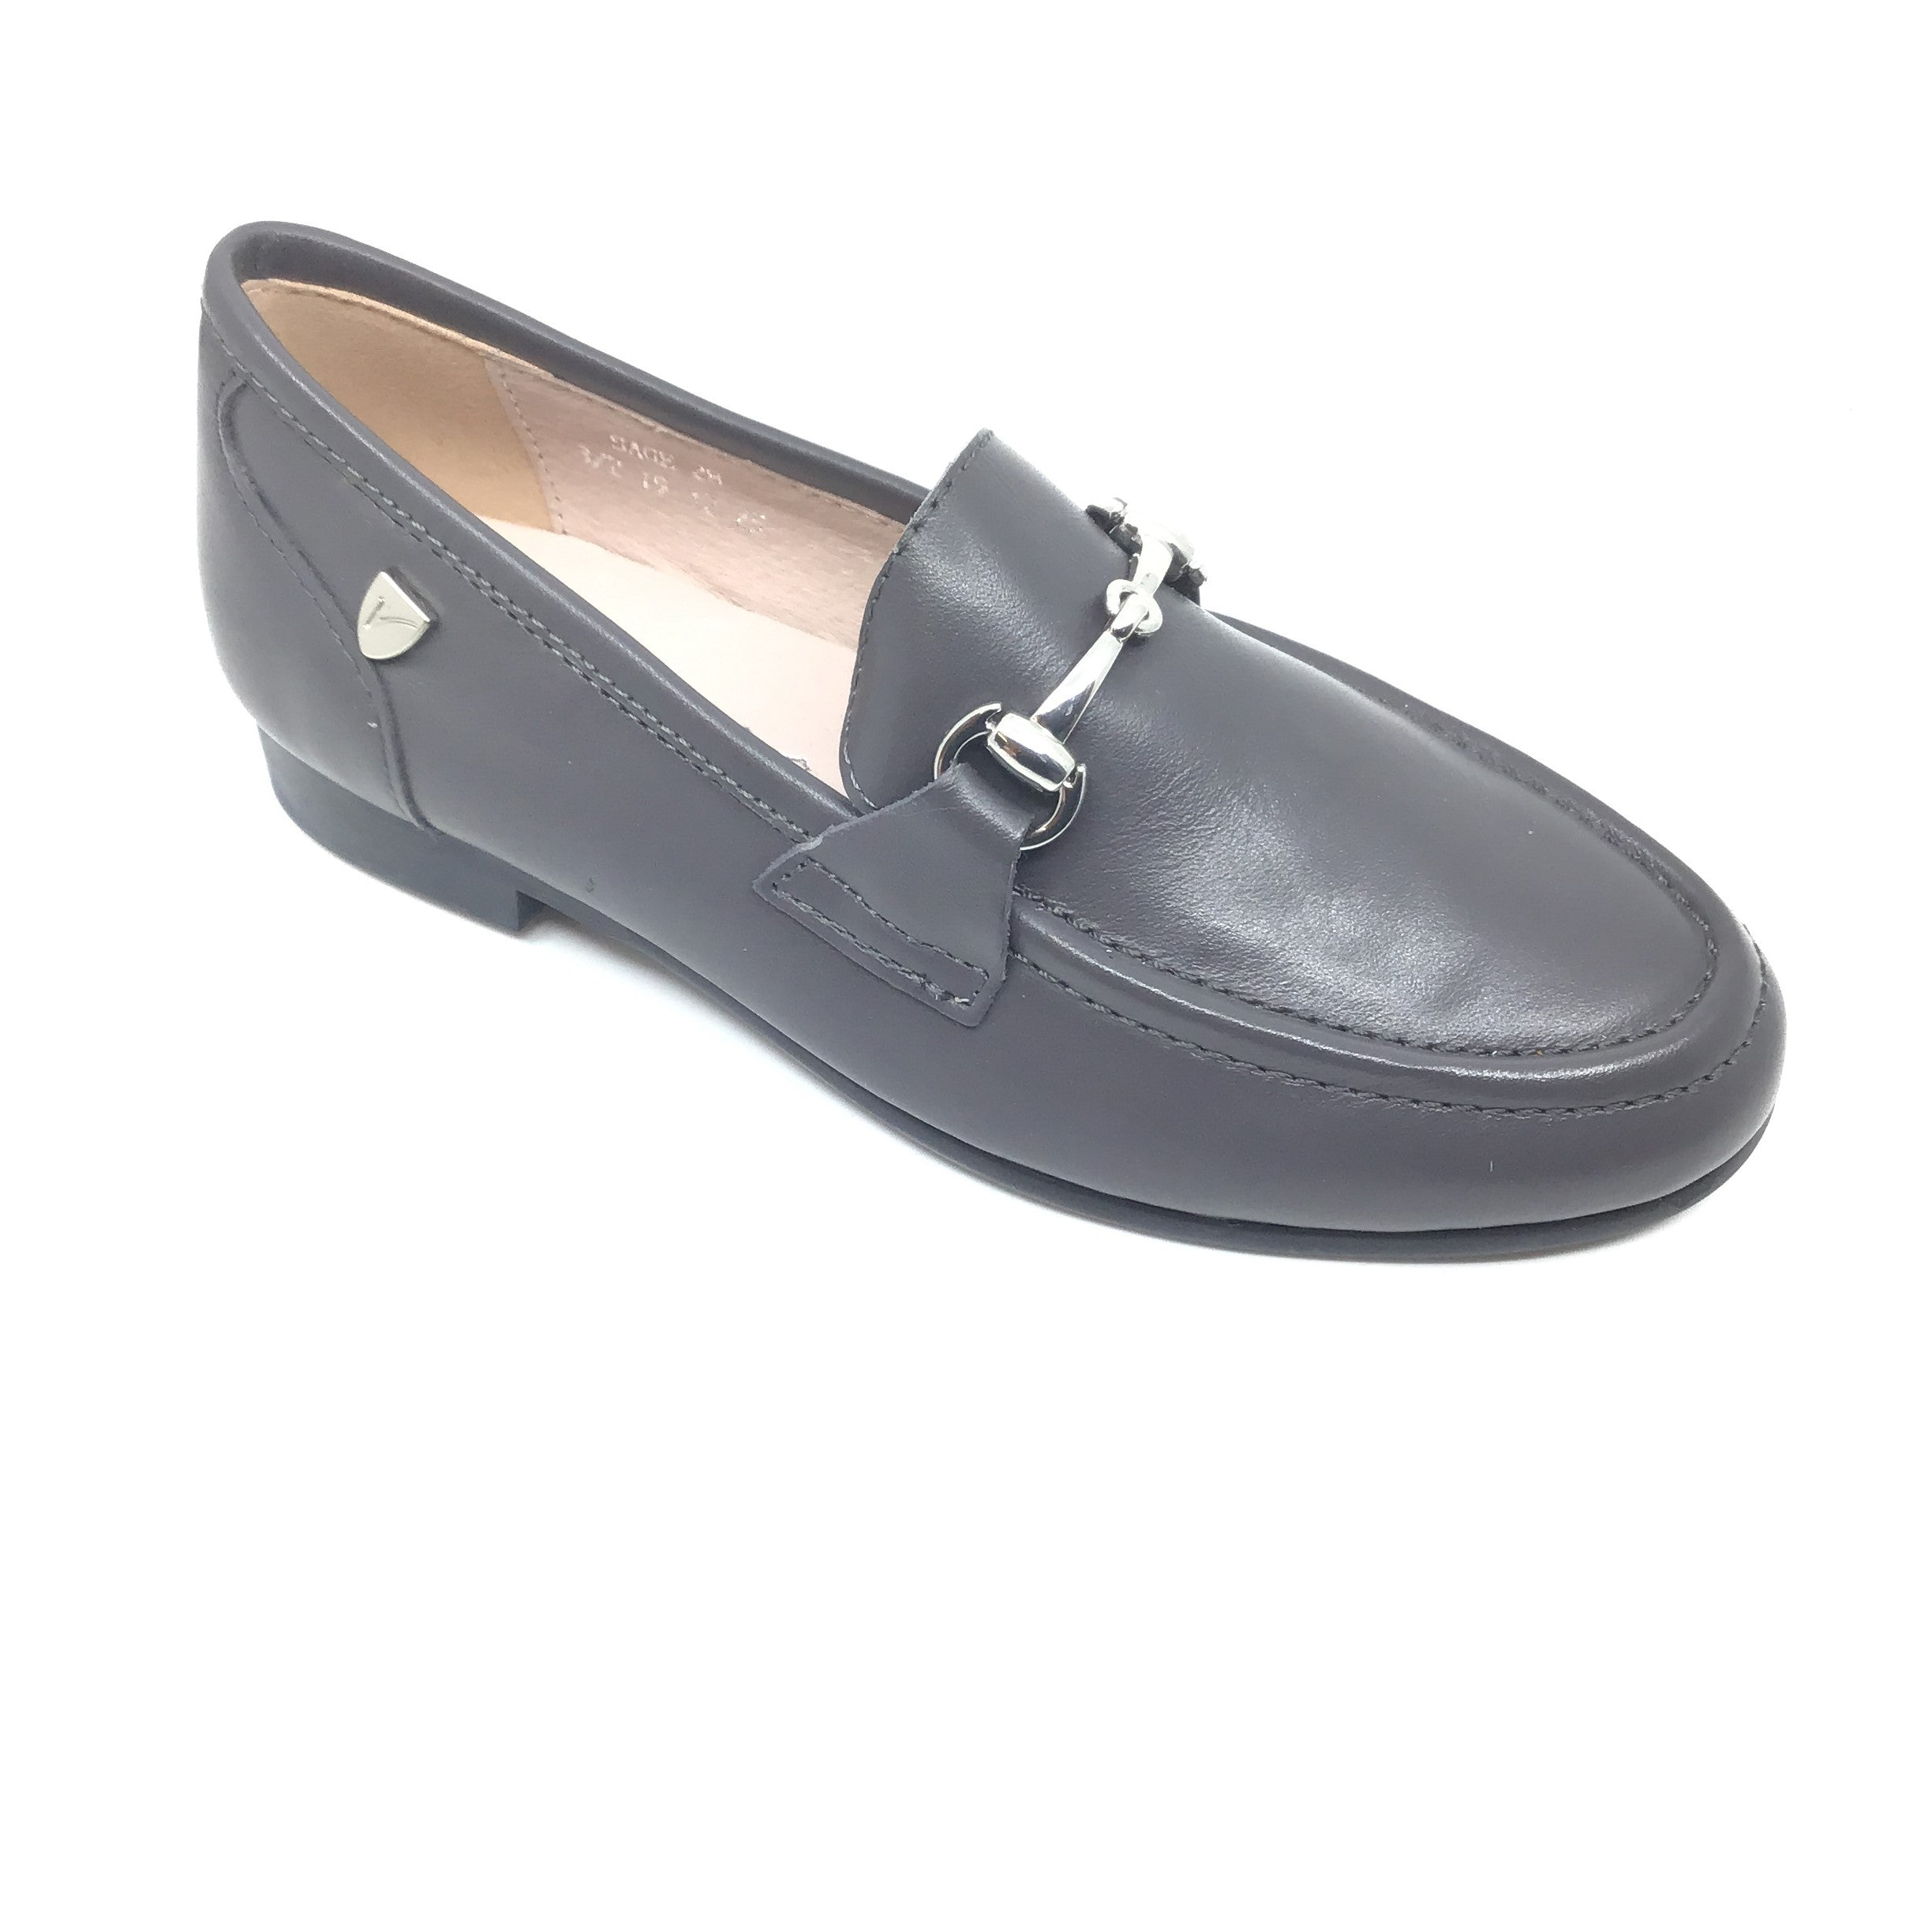 Venettini Gray Dress Slip On with Chain